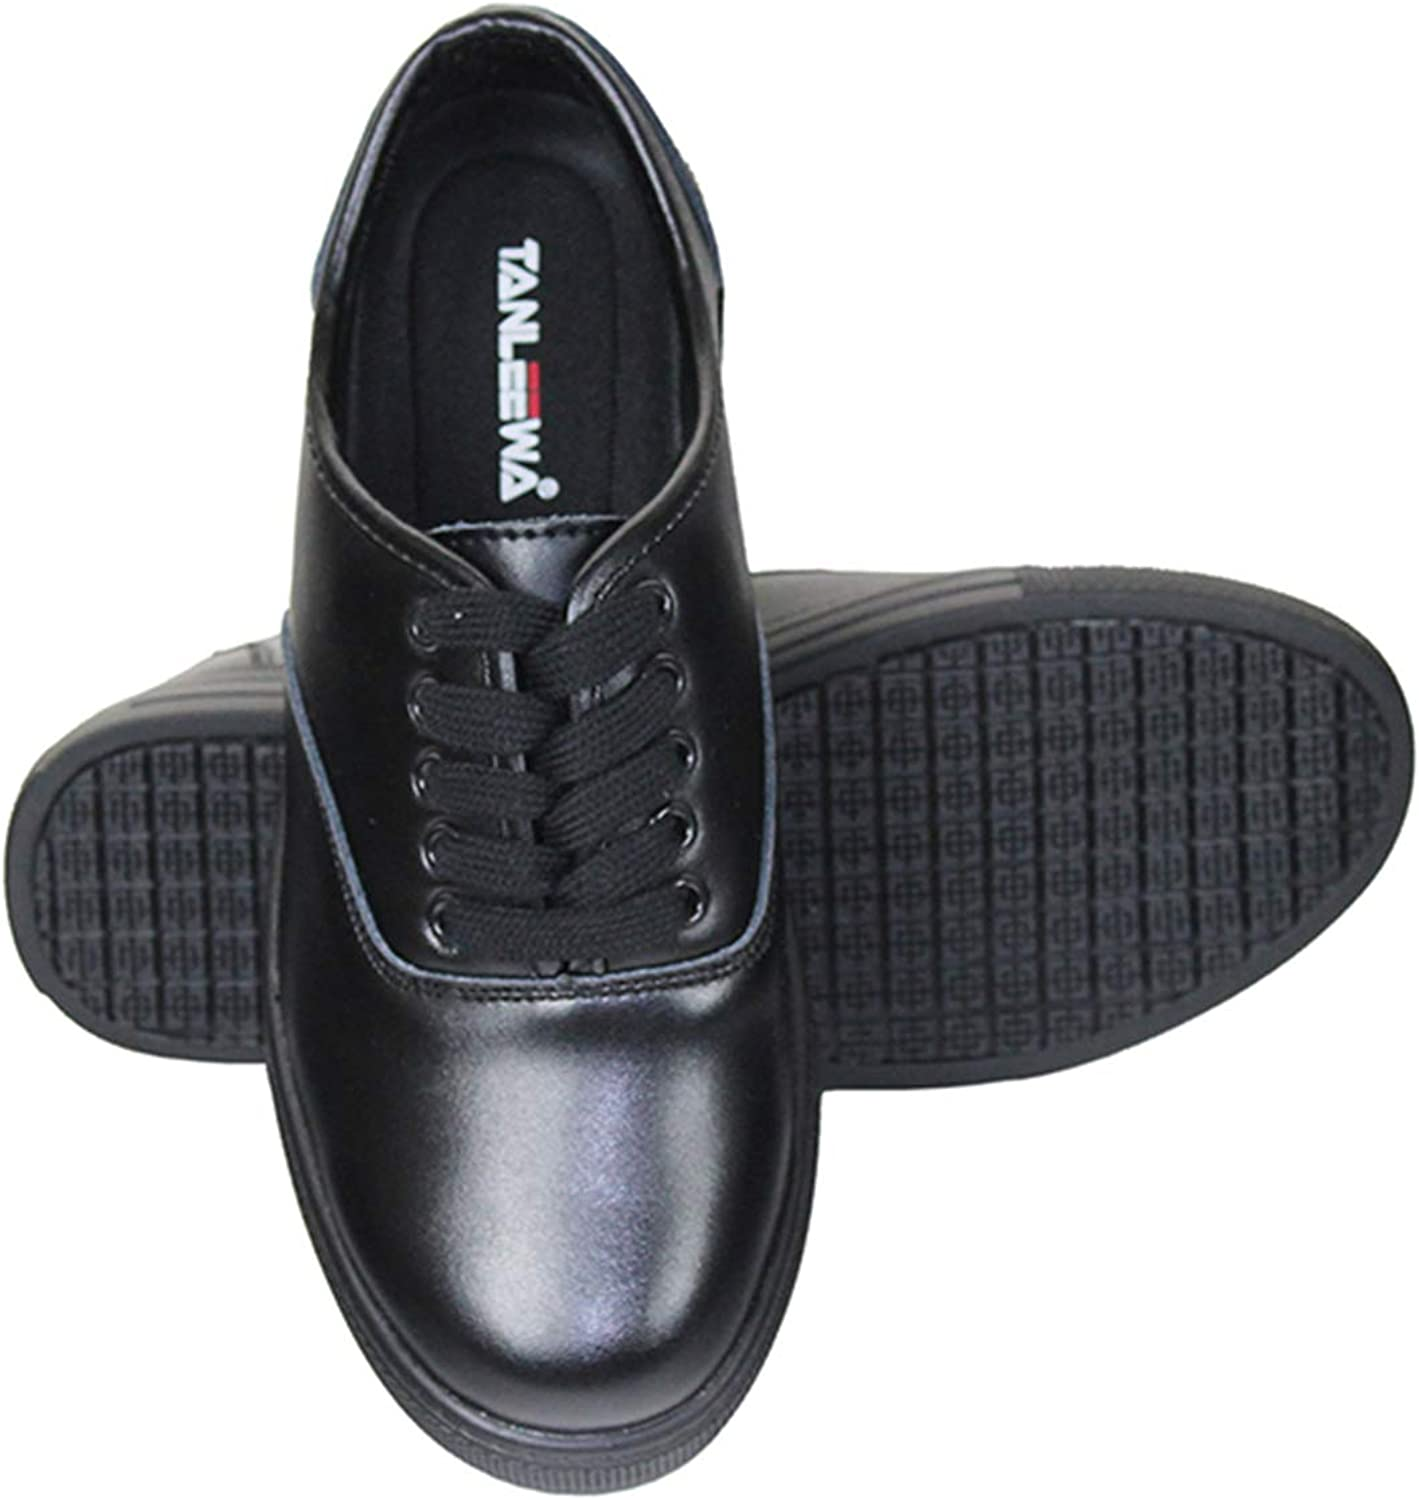 Tanleewa famous Womens Slip Resistant Lace Up Challenge the lowest price of Japan Leather Work Black Shoes